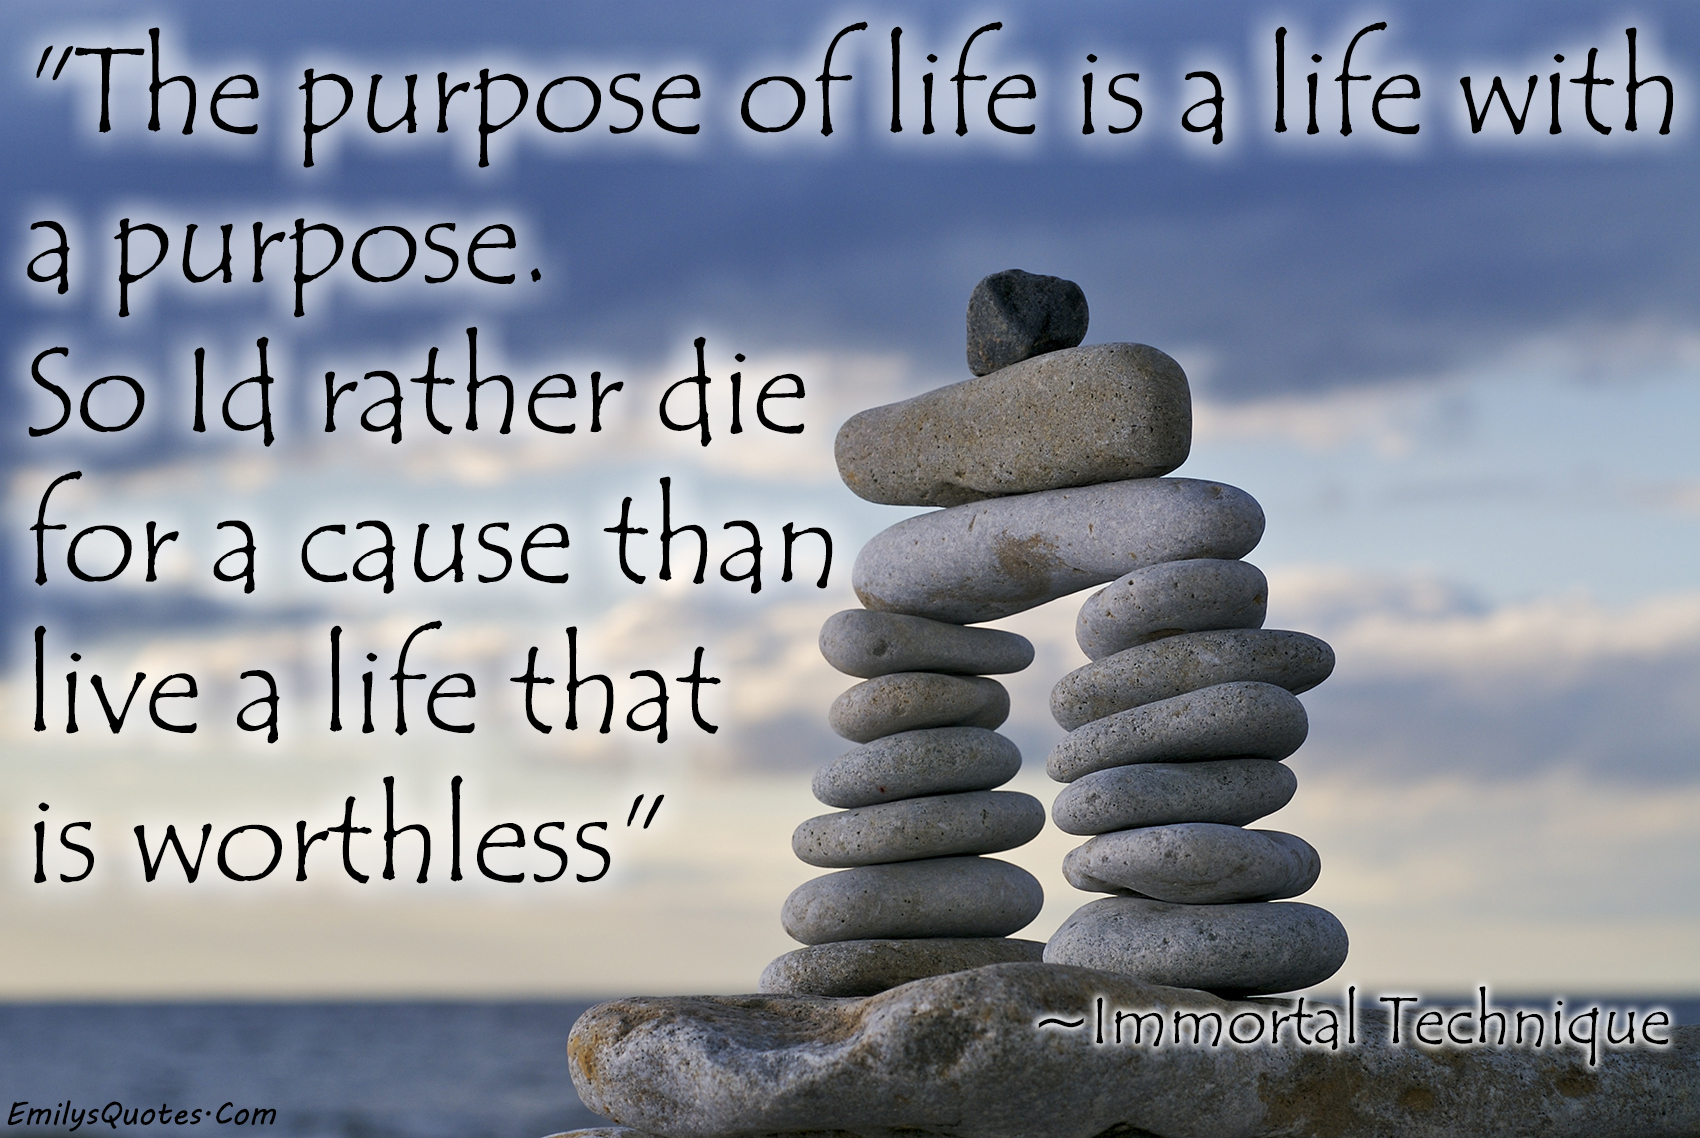 Quotes Purpose Of Life The Purpose Of Life Is A Life With A Purposeso I'd Rather Die